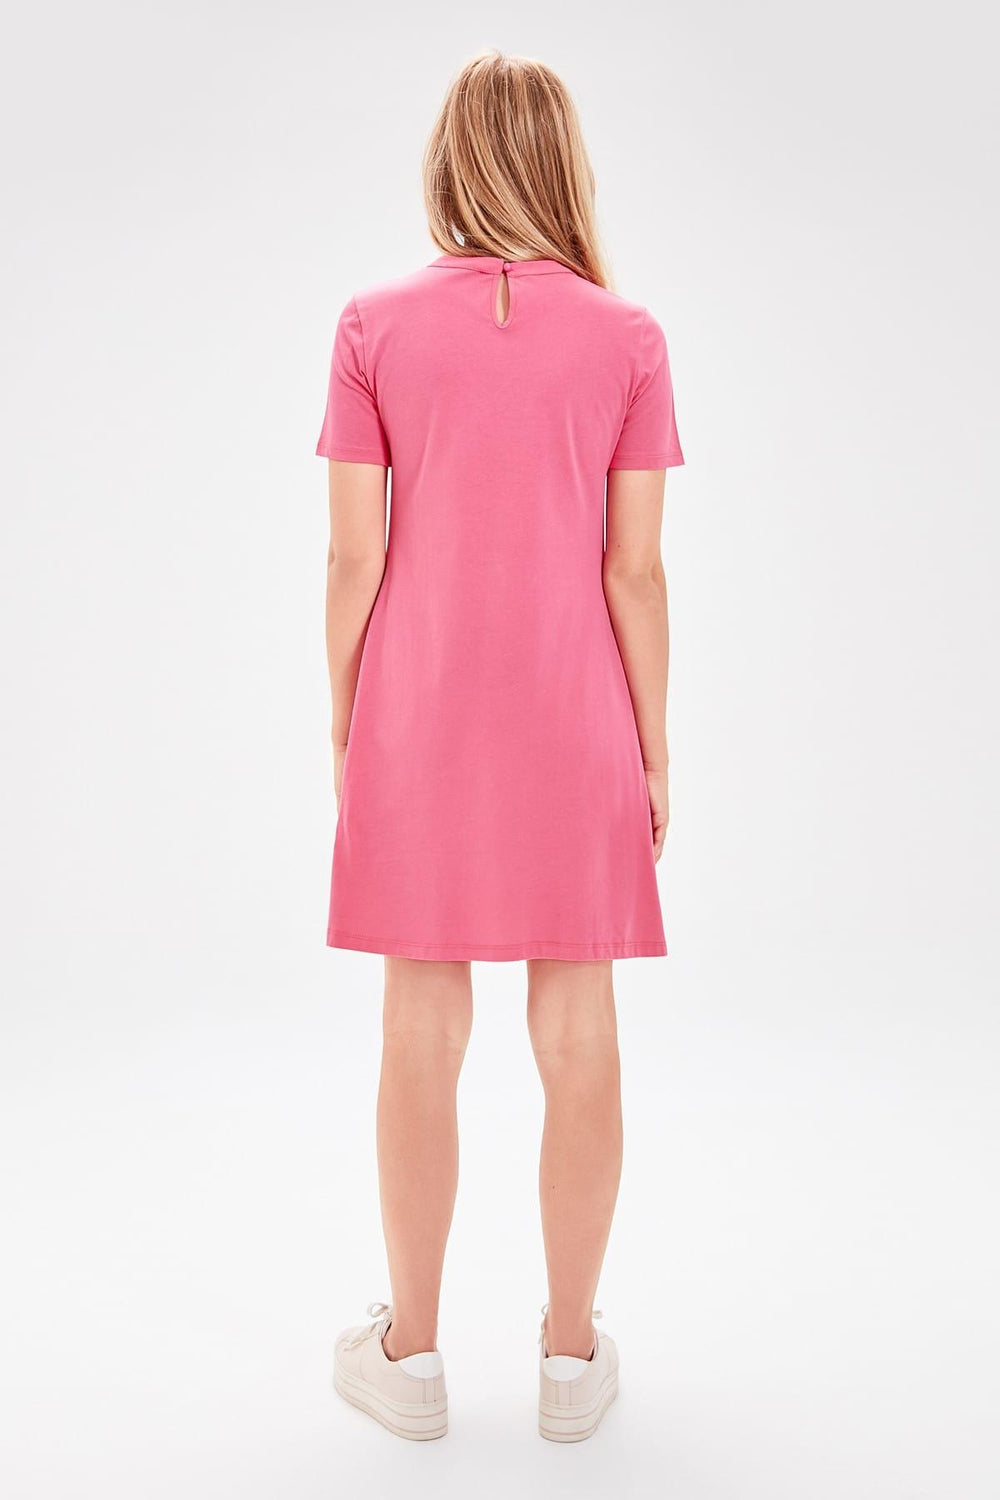 Miss Zut Miss Zut Fuchsia Choker Collar Knitted Dress Miss Zut &CO